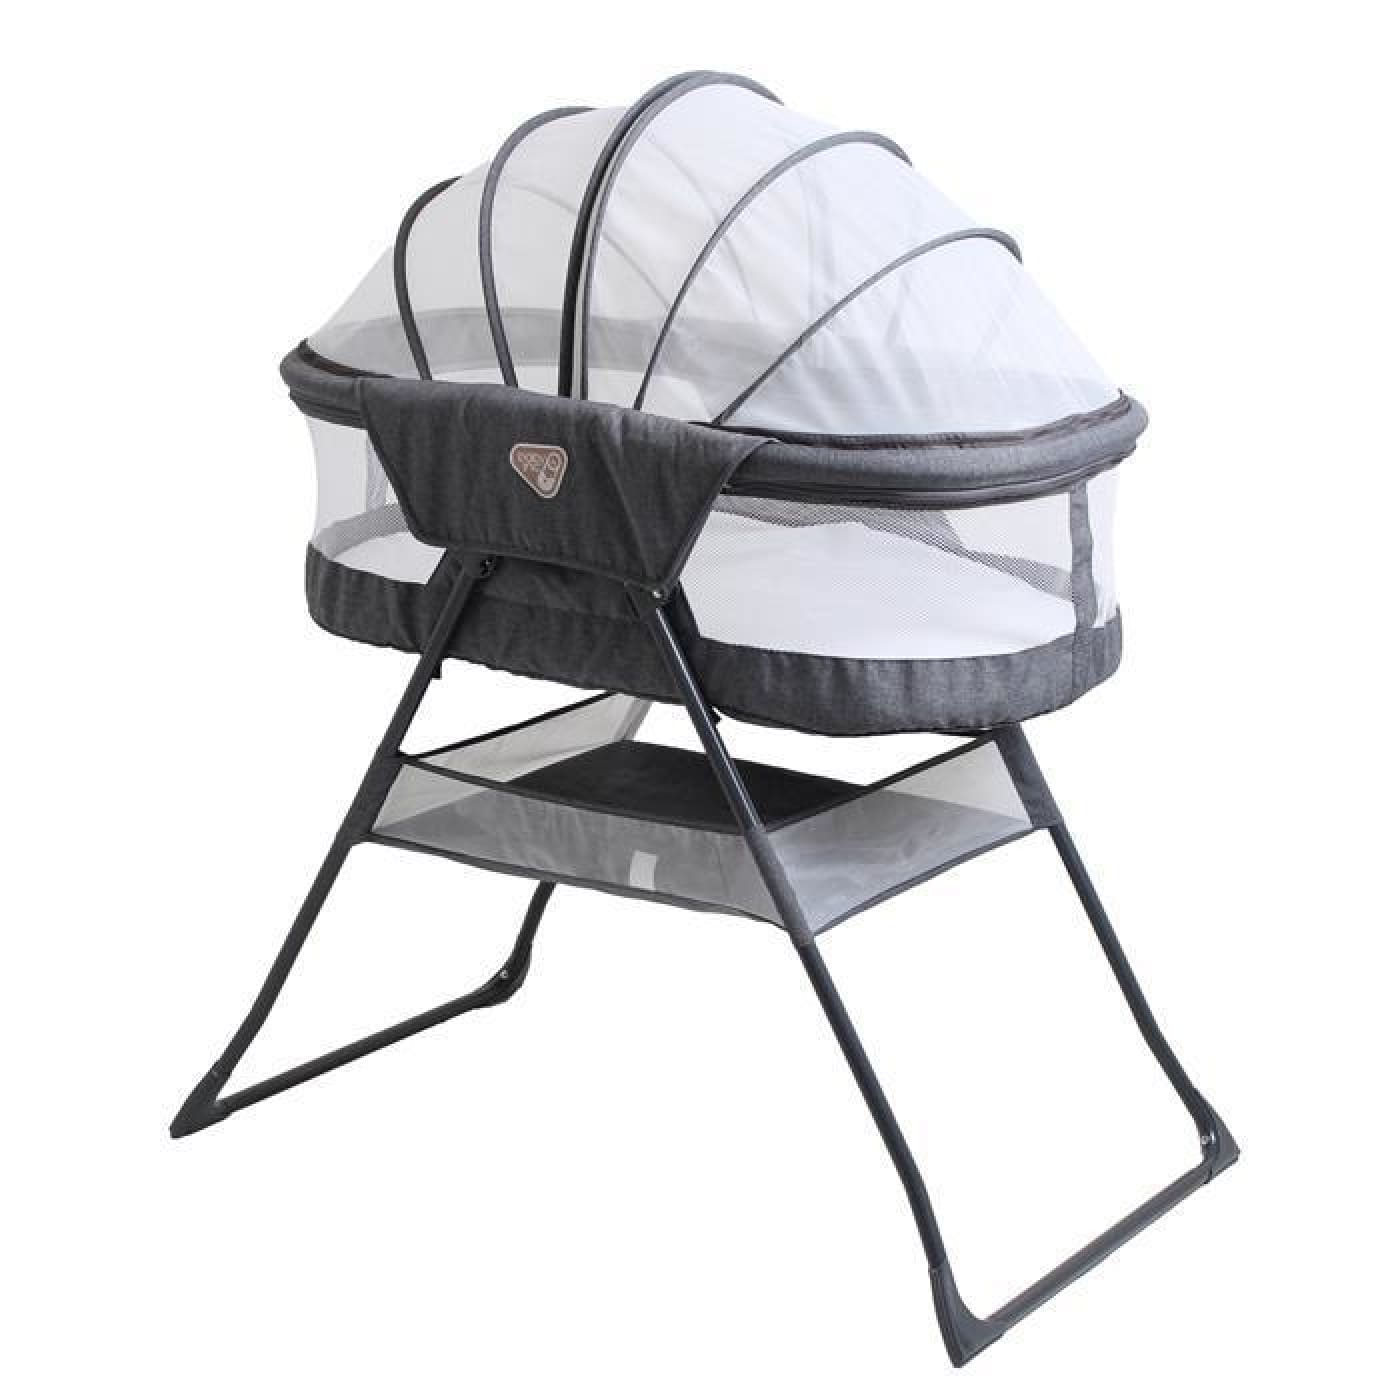 Baby Inc Sonno Bassinet - Silver Birch - Silver Birch - NURSERY & BEDTIME - BASSINETS/CRADLES/CO-SLEEPERS